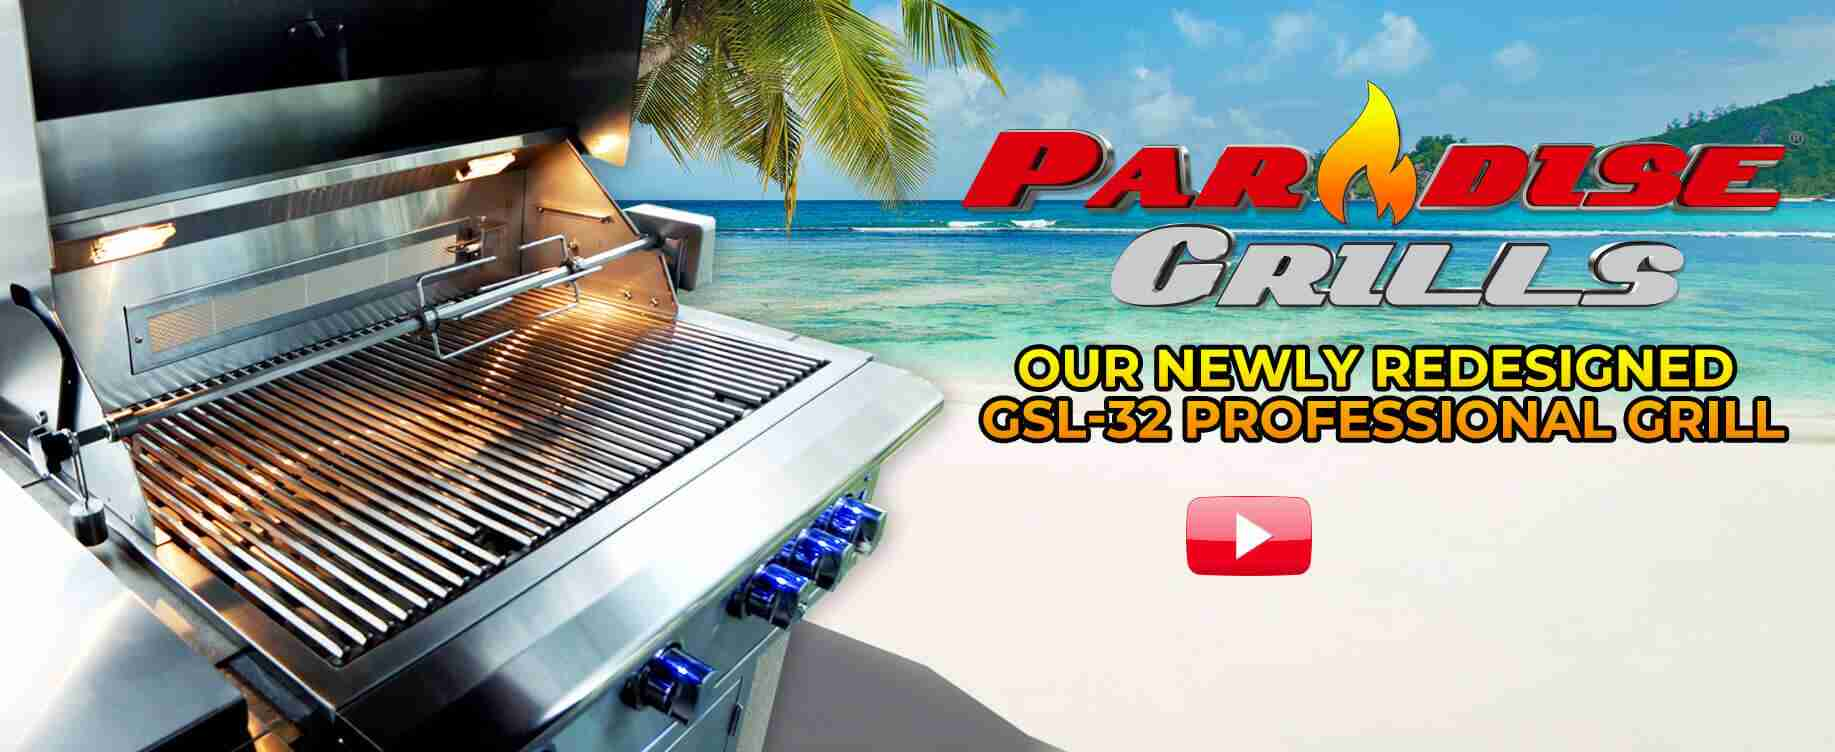 Paradise Grills Grills Video